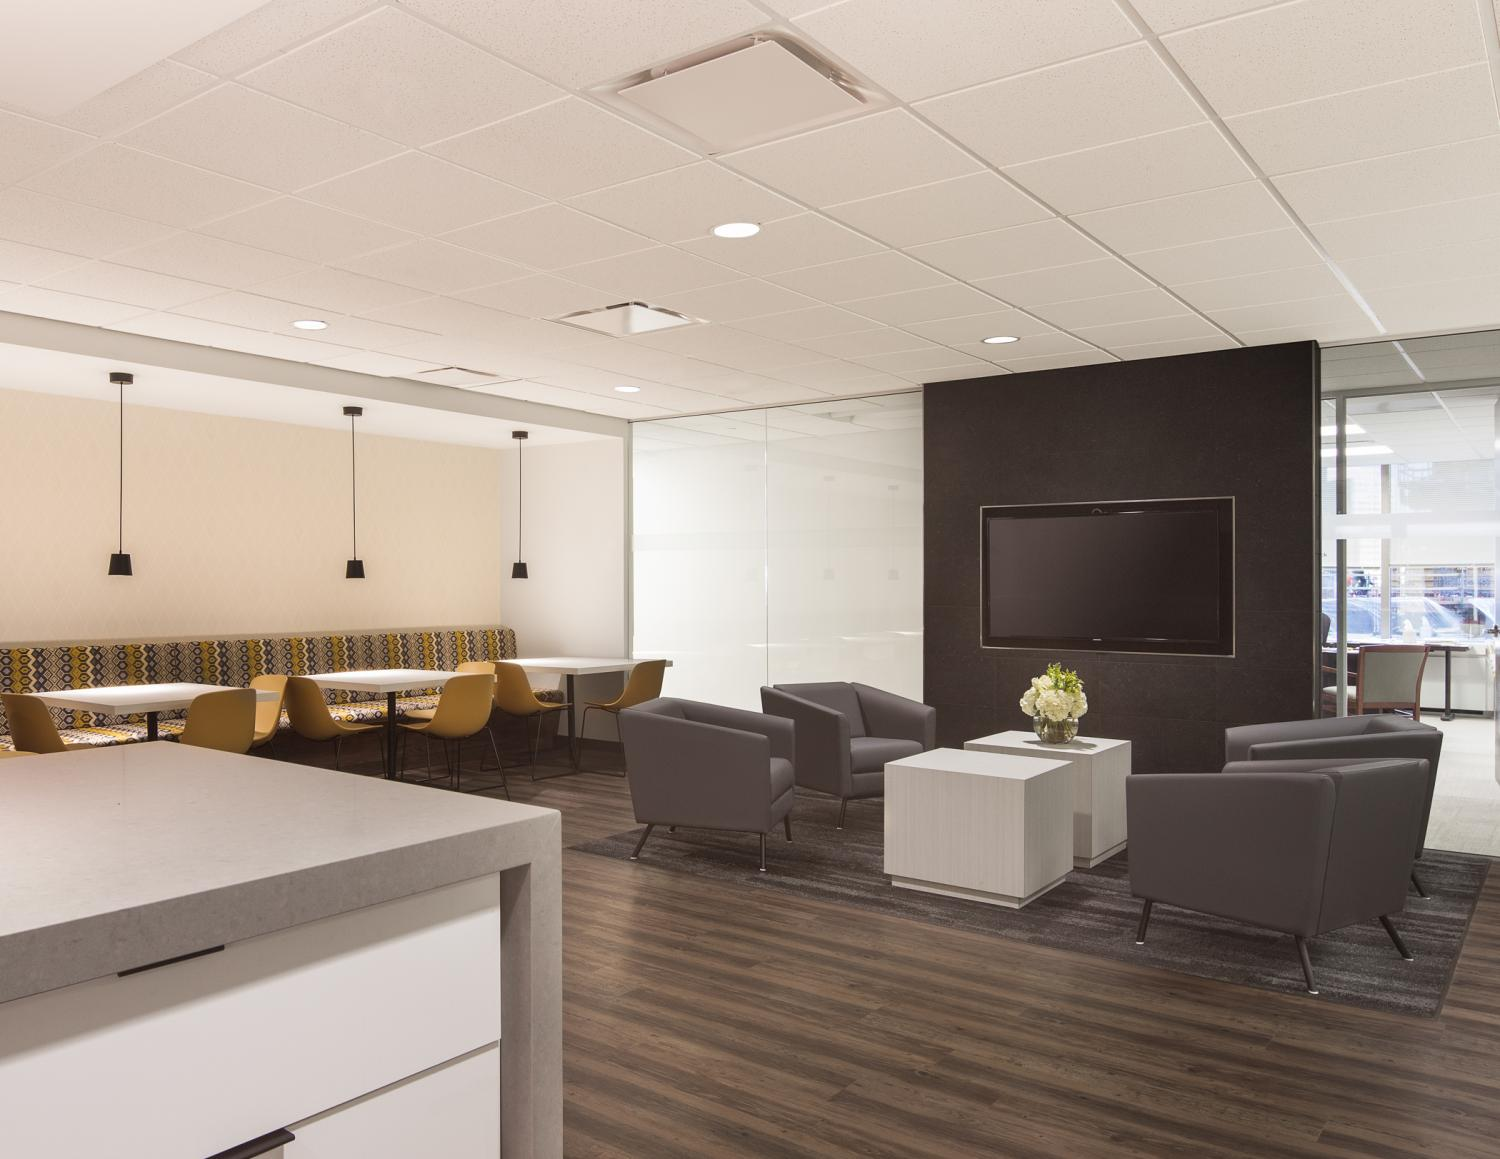 Caerus Oil and Gas Break Room and Seating Area Commercial Construction Denver Colorado